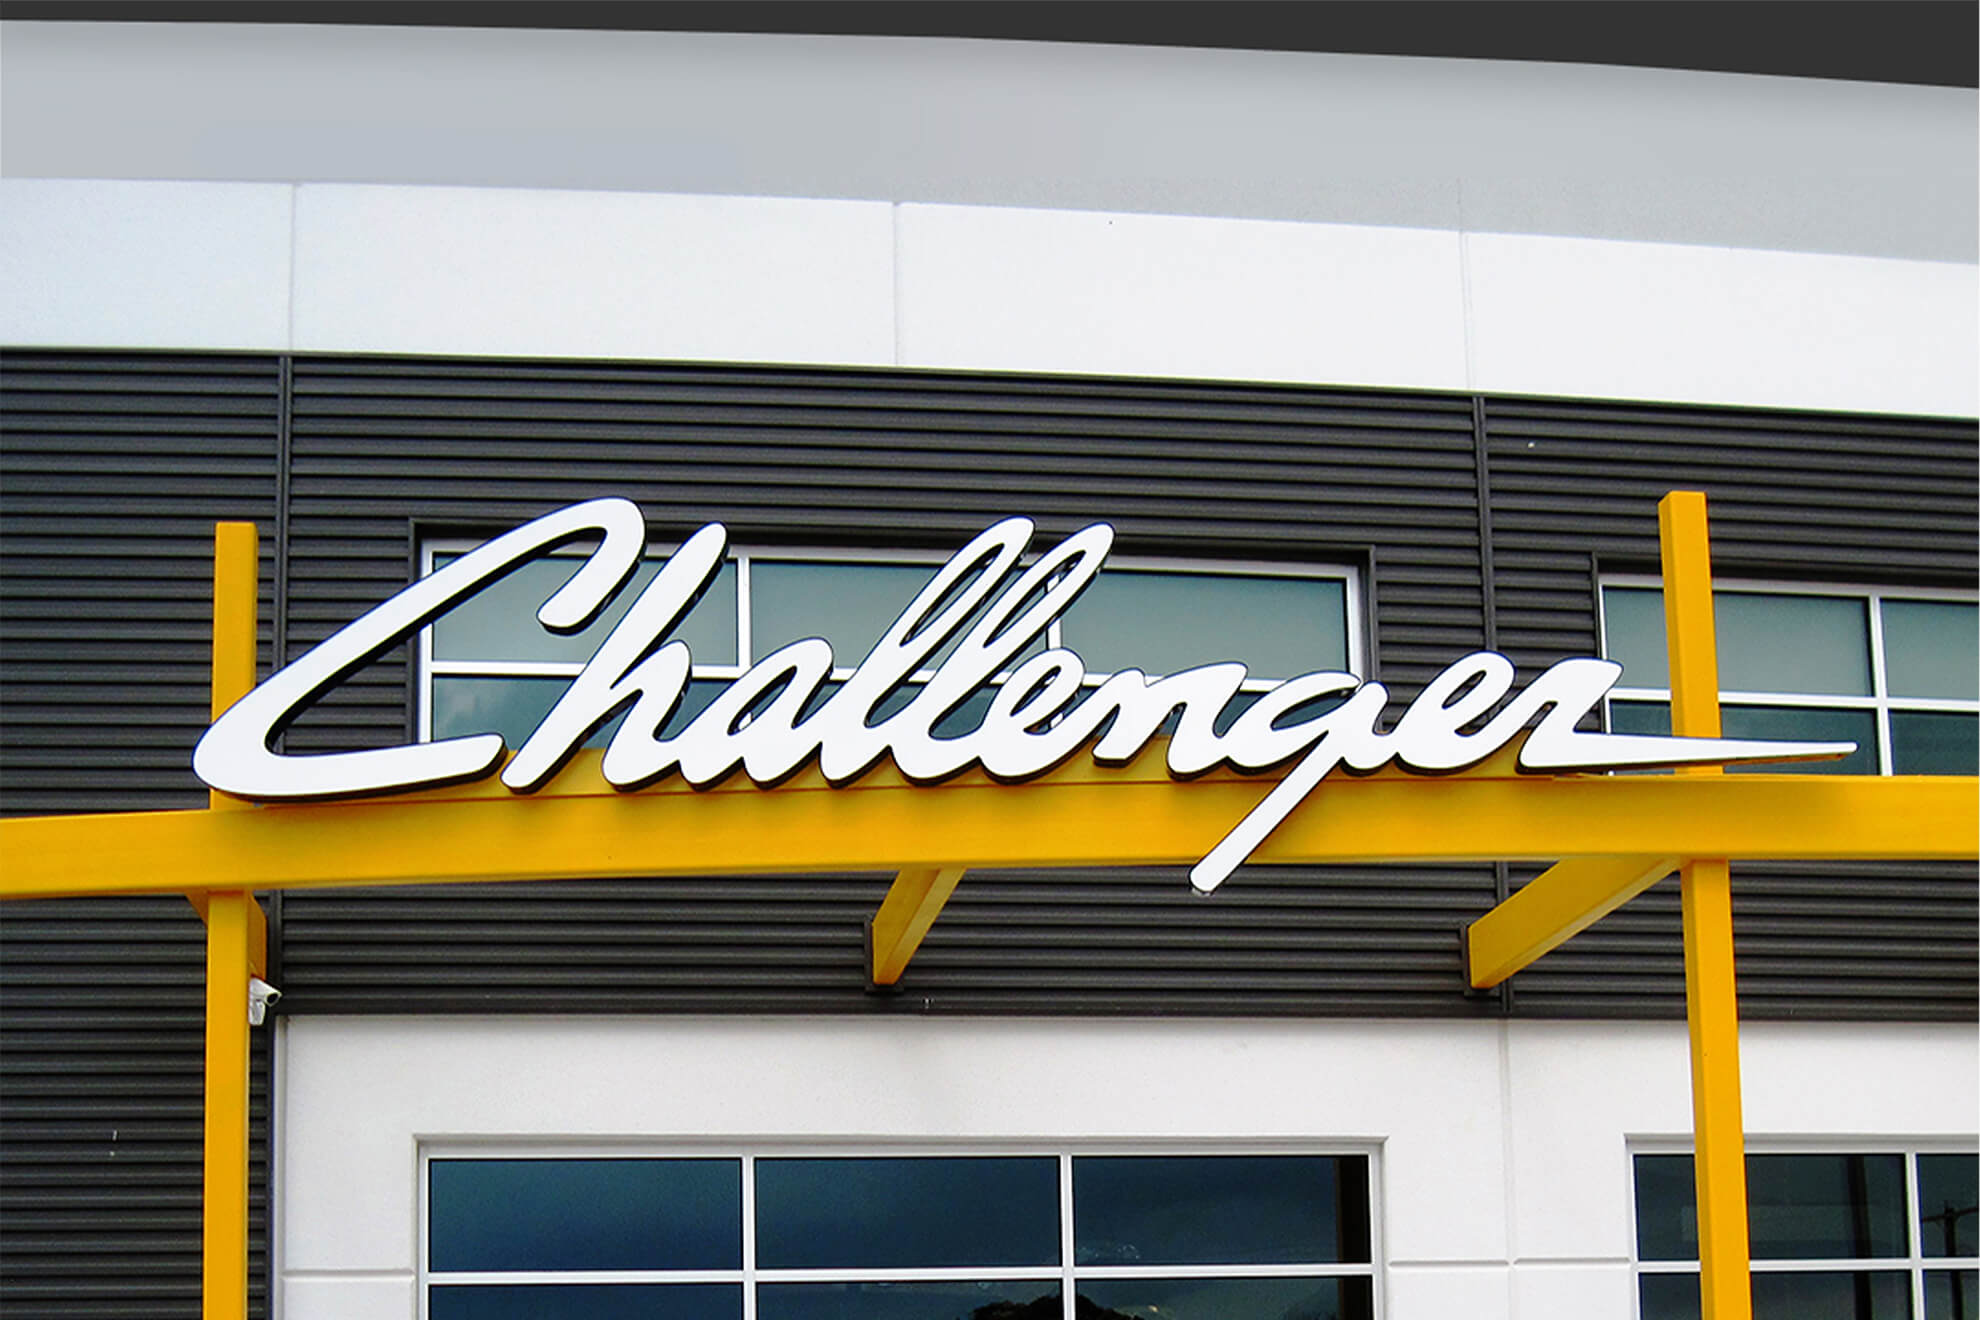 Expert craftsmanship went into creating this Challenger channel letter sign